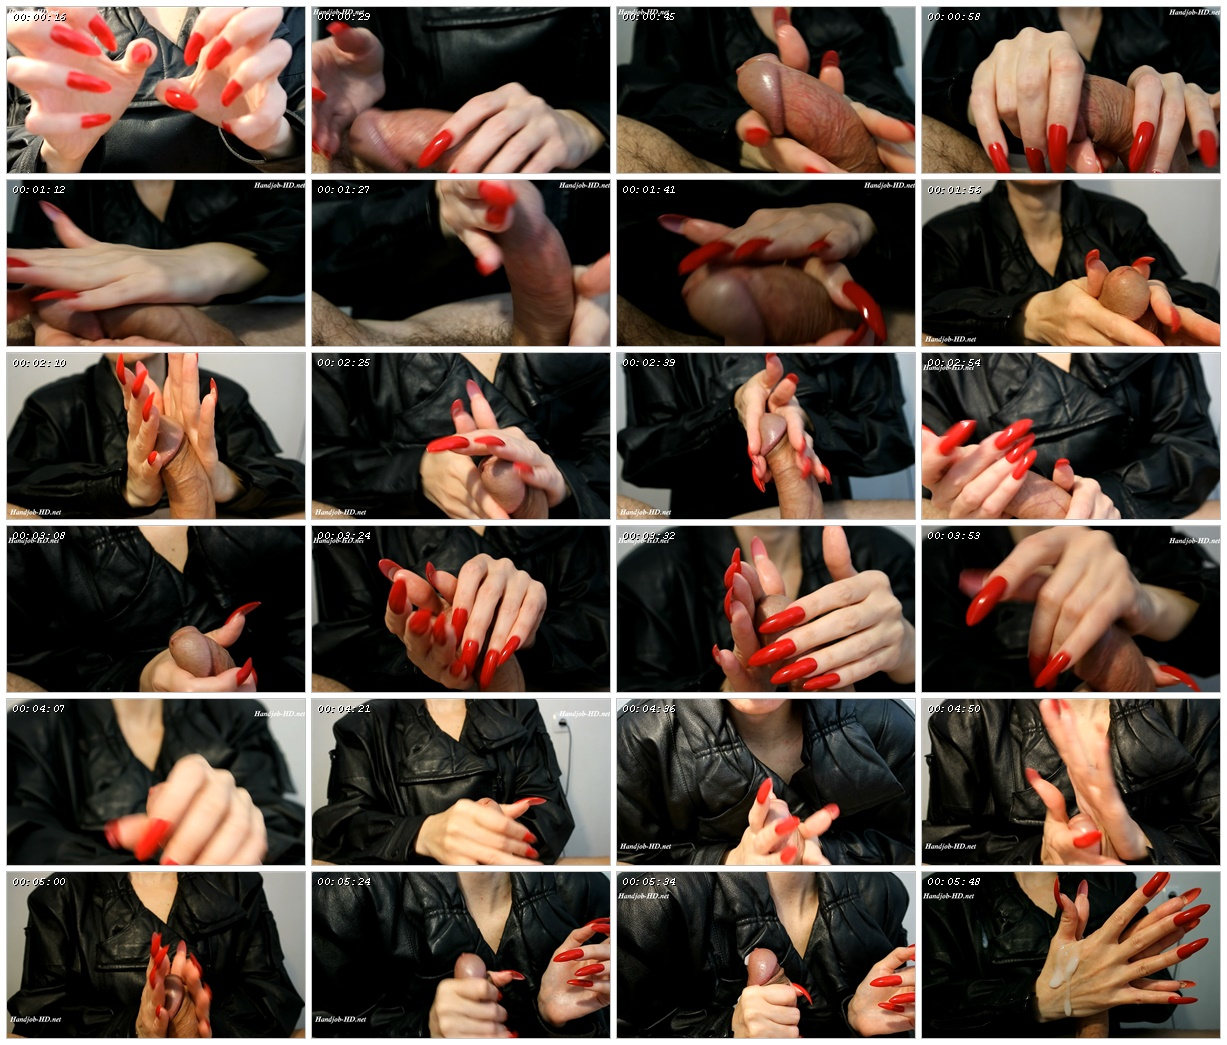 Handjobs long red hails with leather sound - HJ Goddess TEASE_scrlist